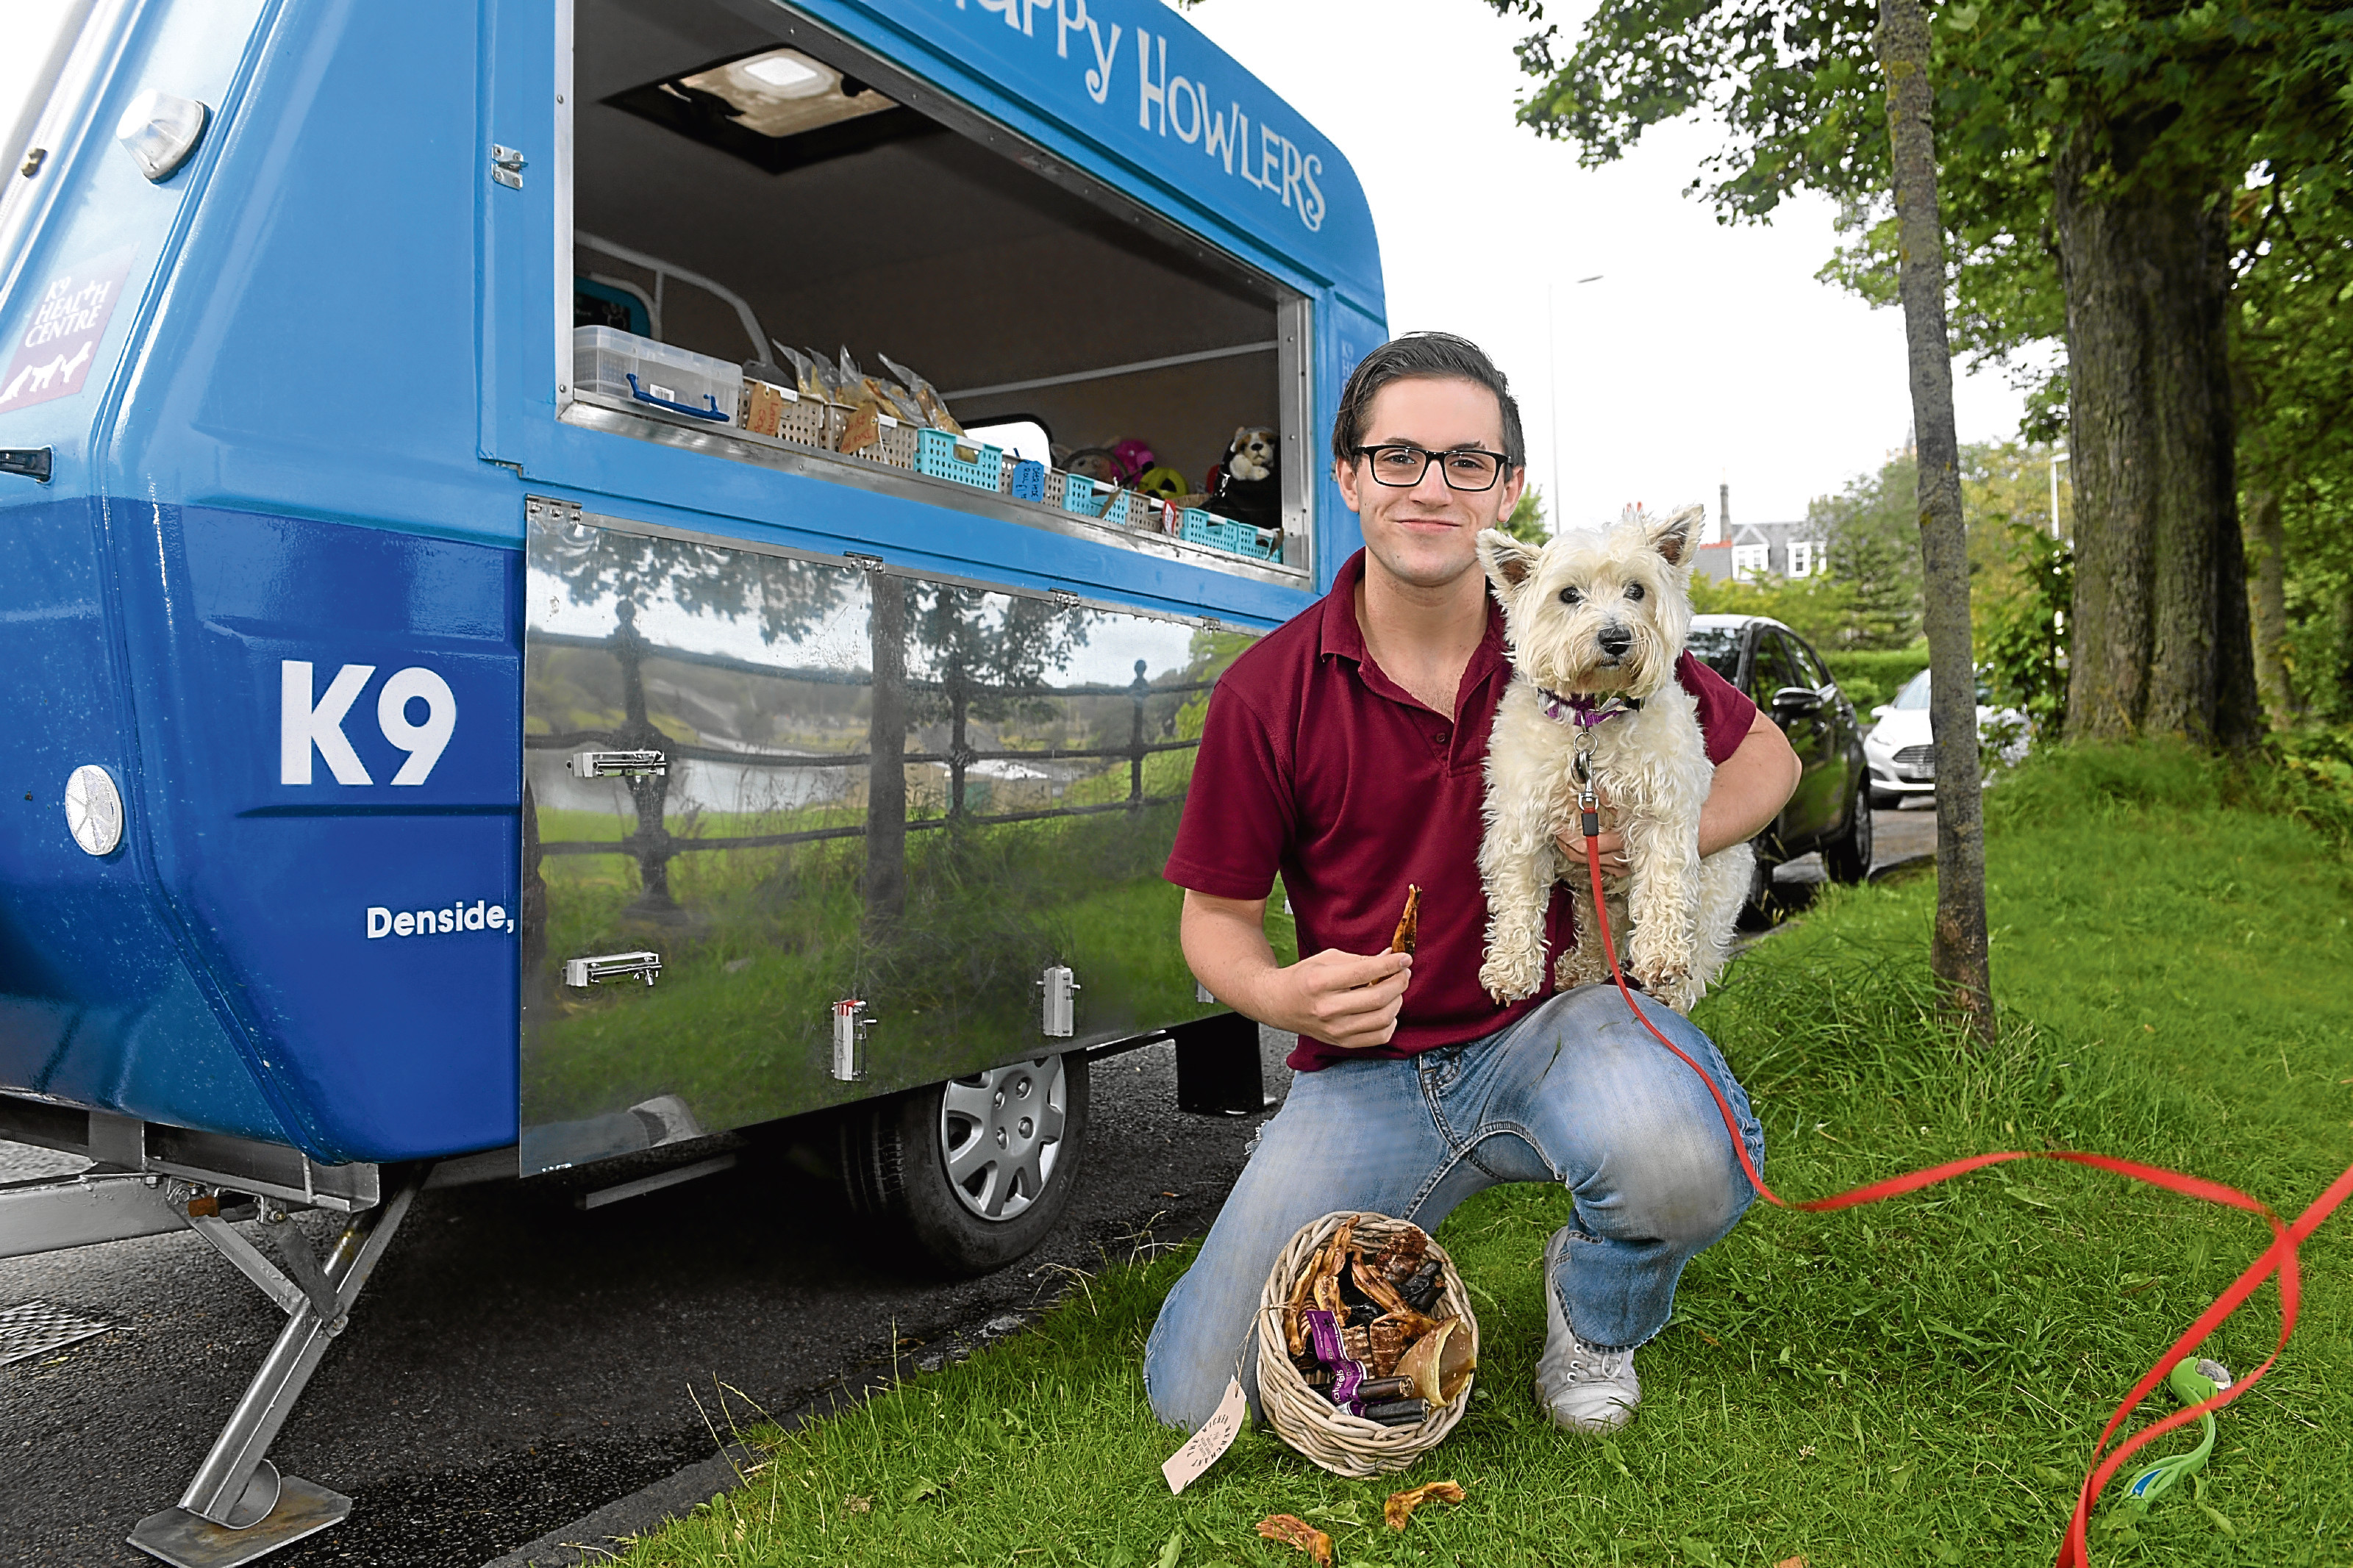 West Highland Terrier Pyper tries some of the treats on offer from Samuel at the deli van.